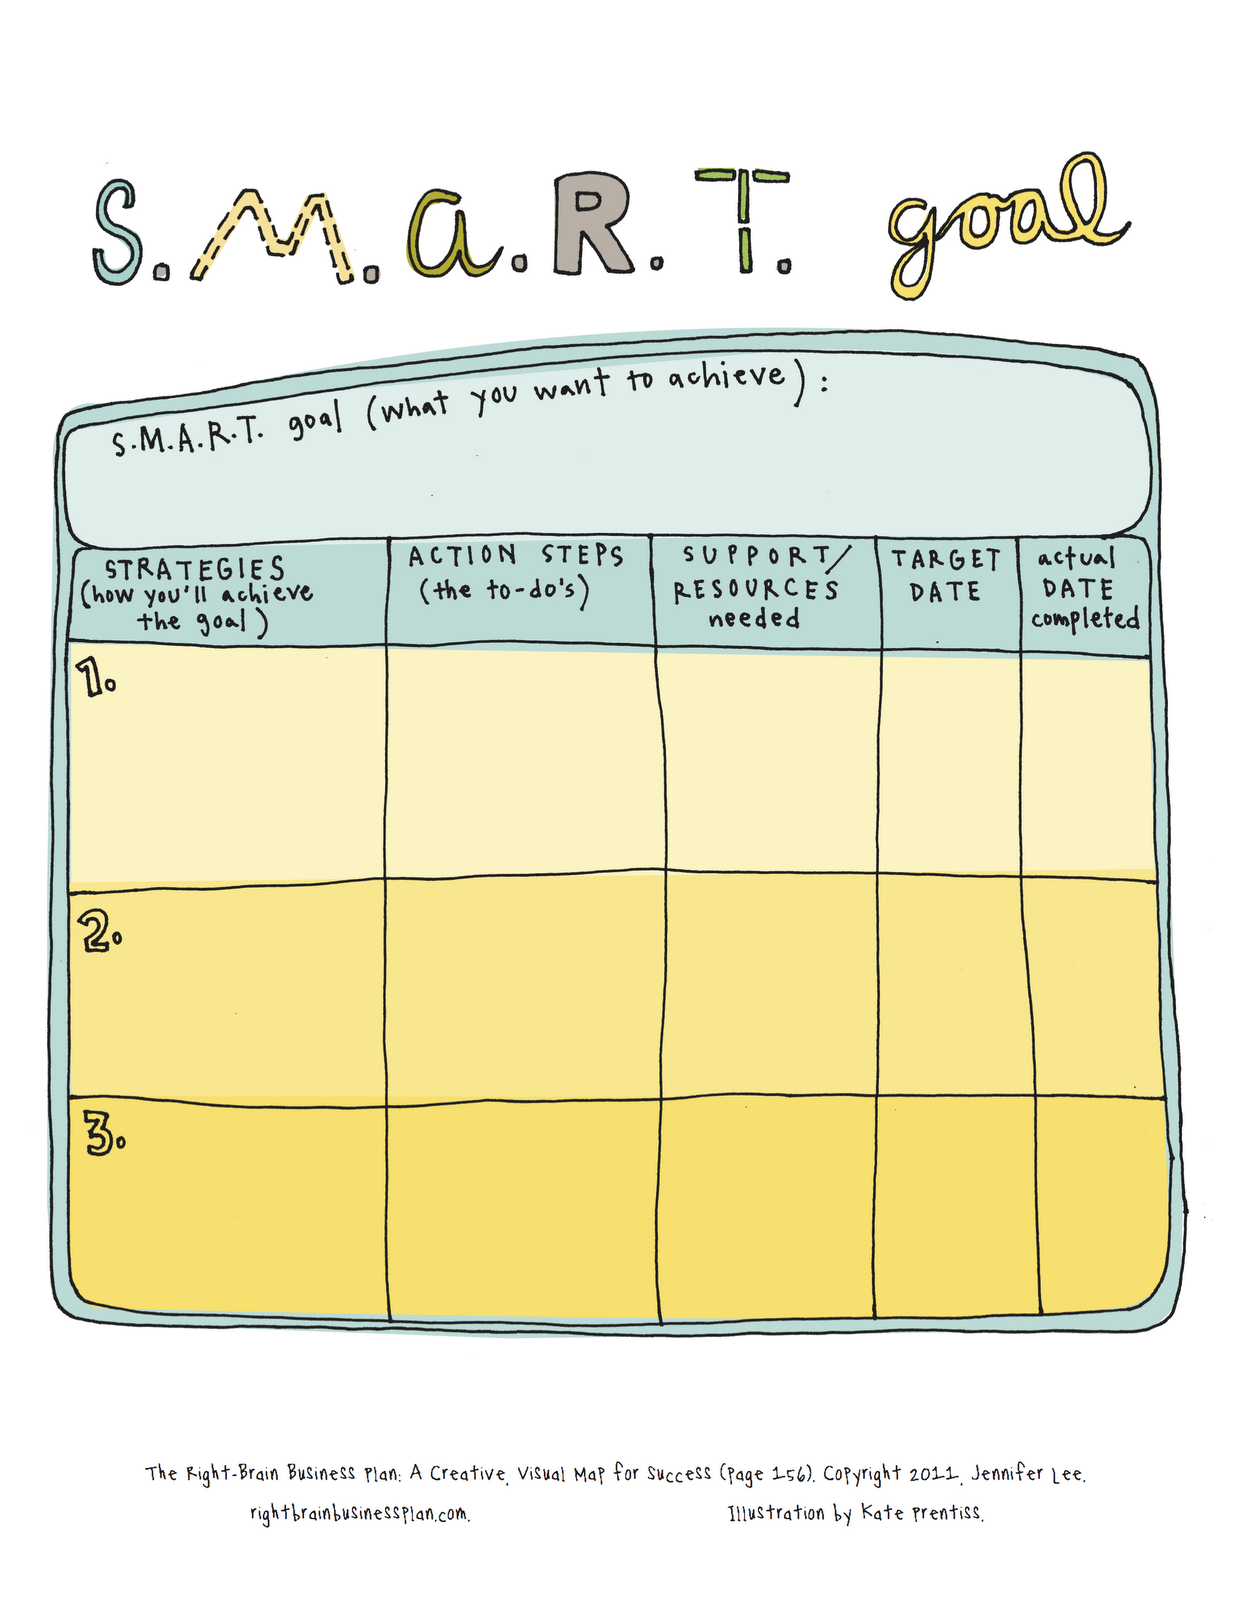 2016 goal setting template calendar template 2016. smart goals ...